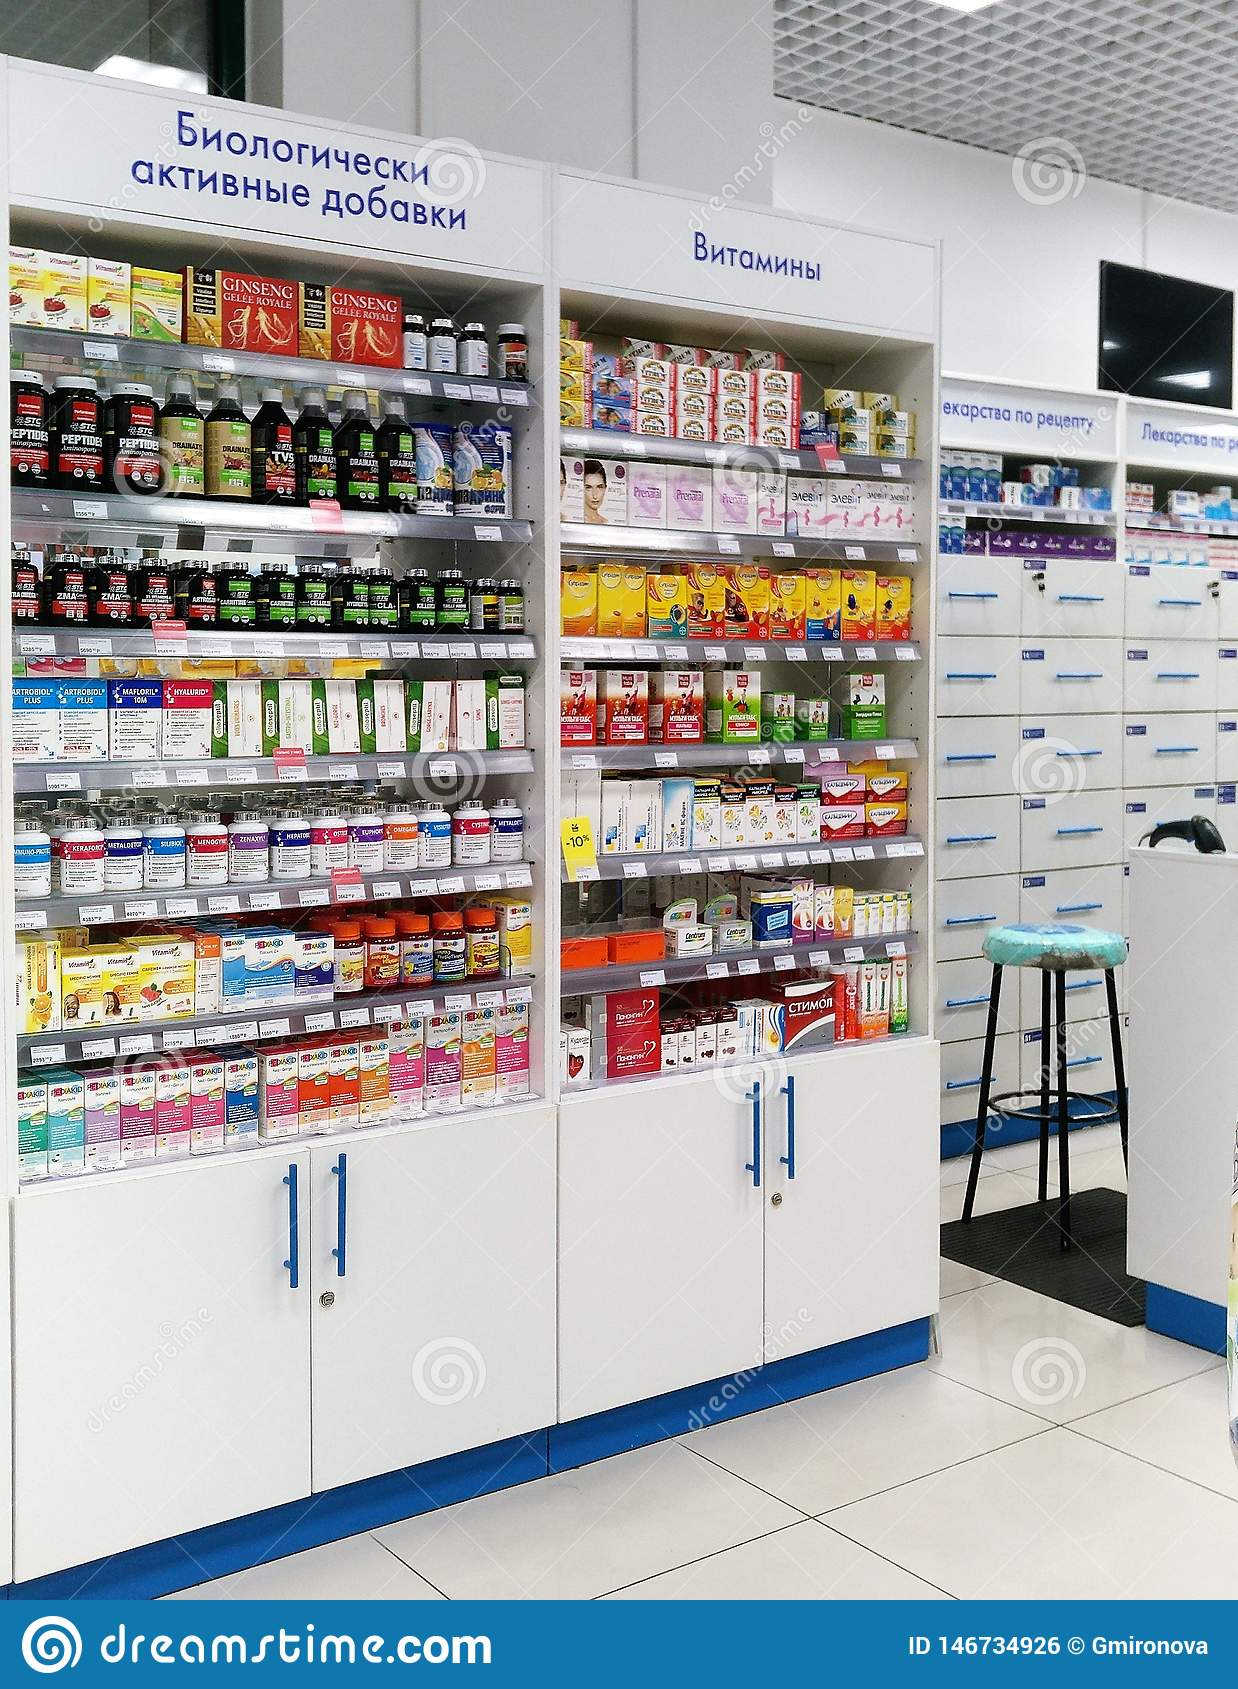 Moscow, Russia-May 5, 2019: Pharmacy, text on the shelves: Dietary supplements, Vitamins, prescription Drugs